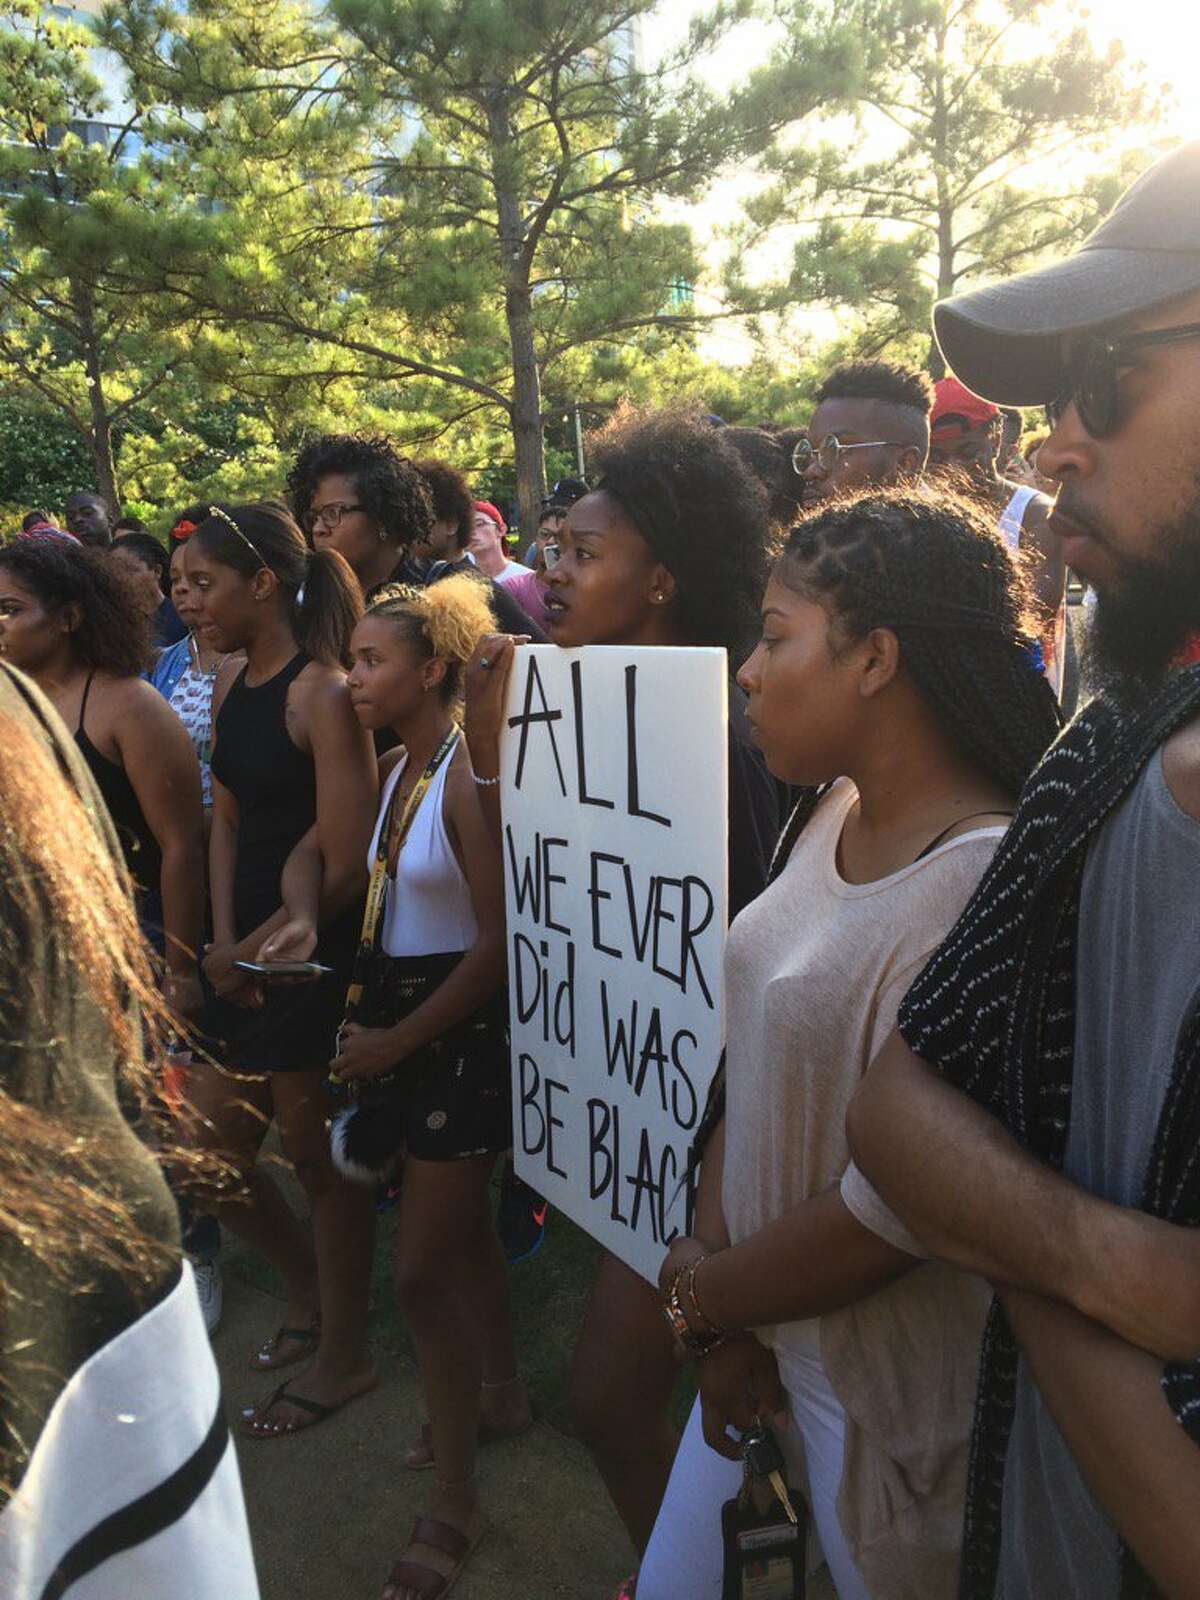 About 150 people gathered at Discovery Green in Houston on Wednesday at an event that denounced the police killing of Alton Sterling in Baton Rouge, La.